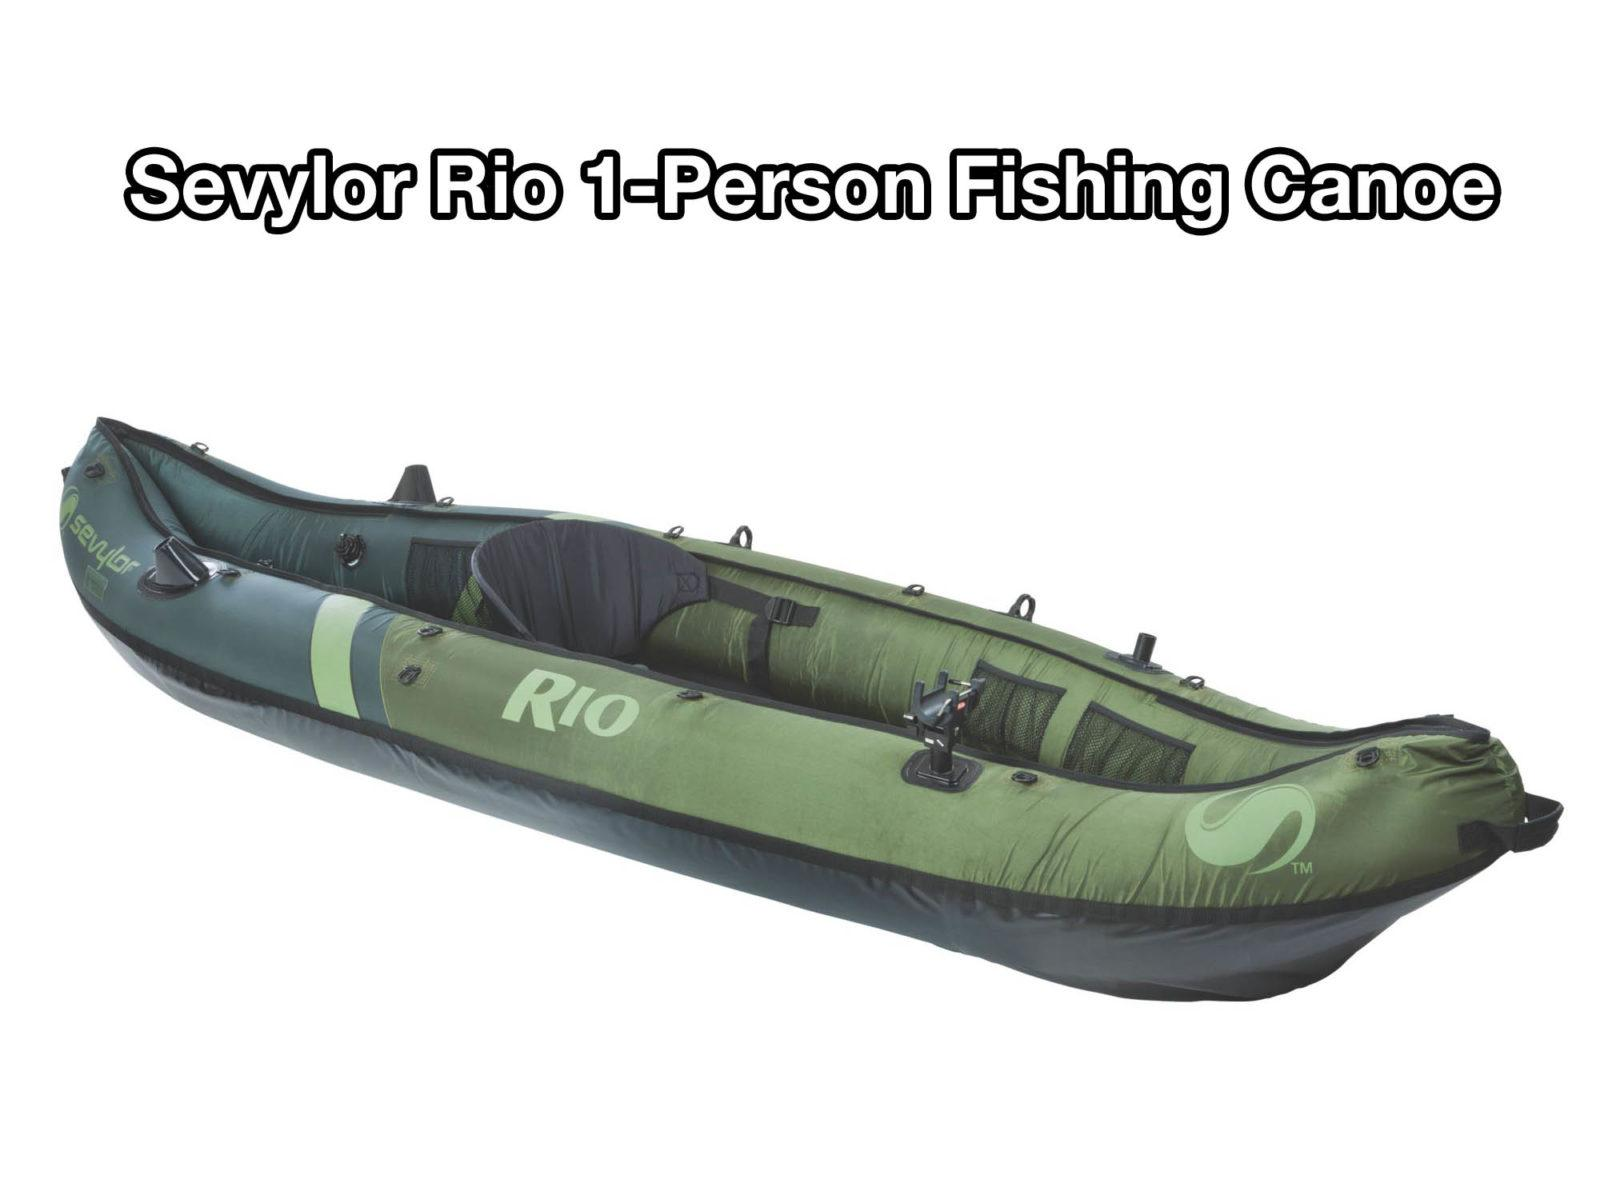 Sevylor Rio 1-Person Fishing Canoe review